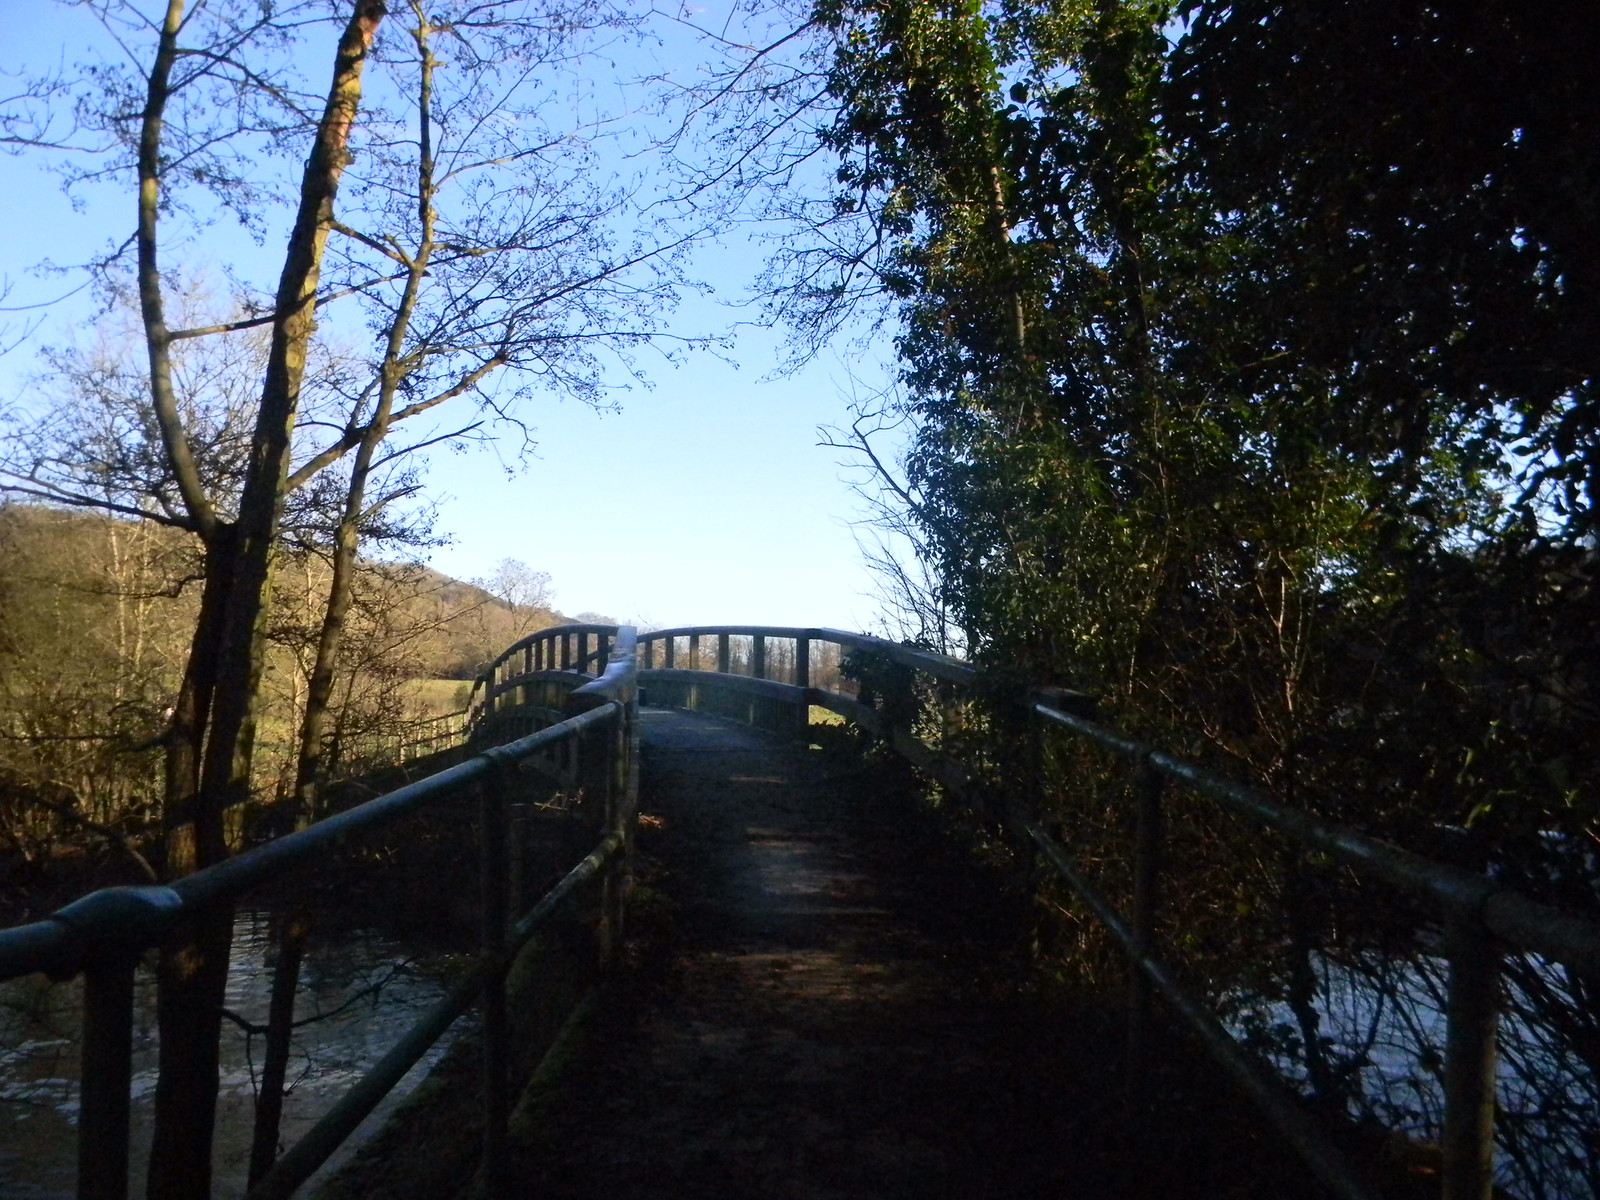 Bridge over the River Mole Dorking to Reigate